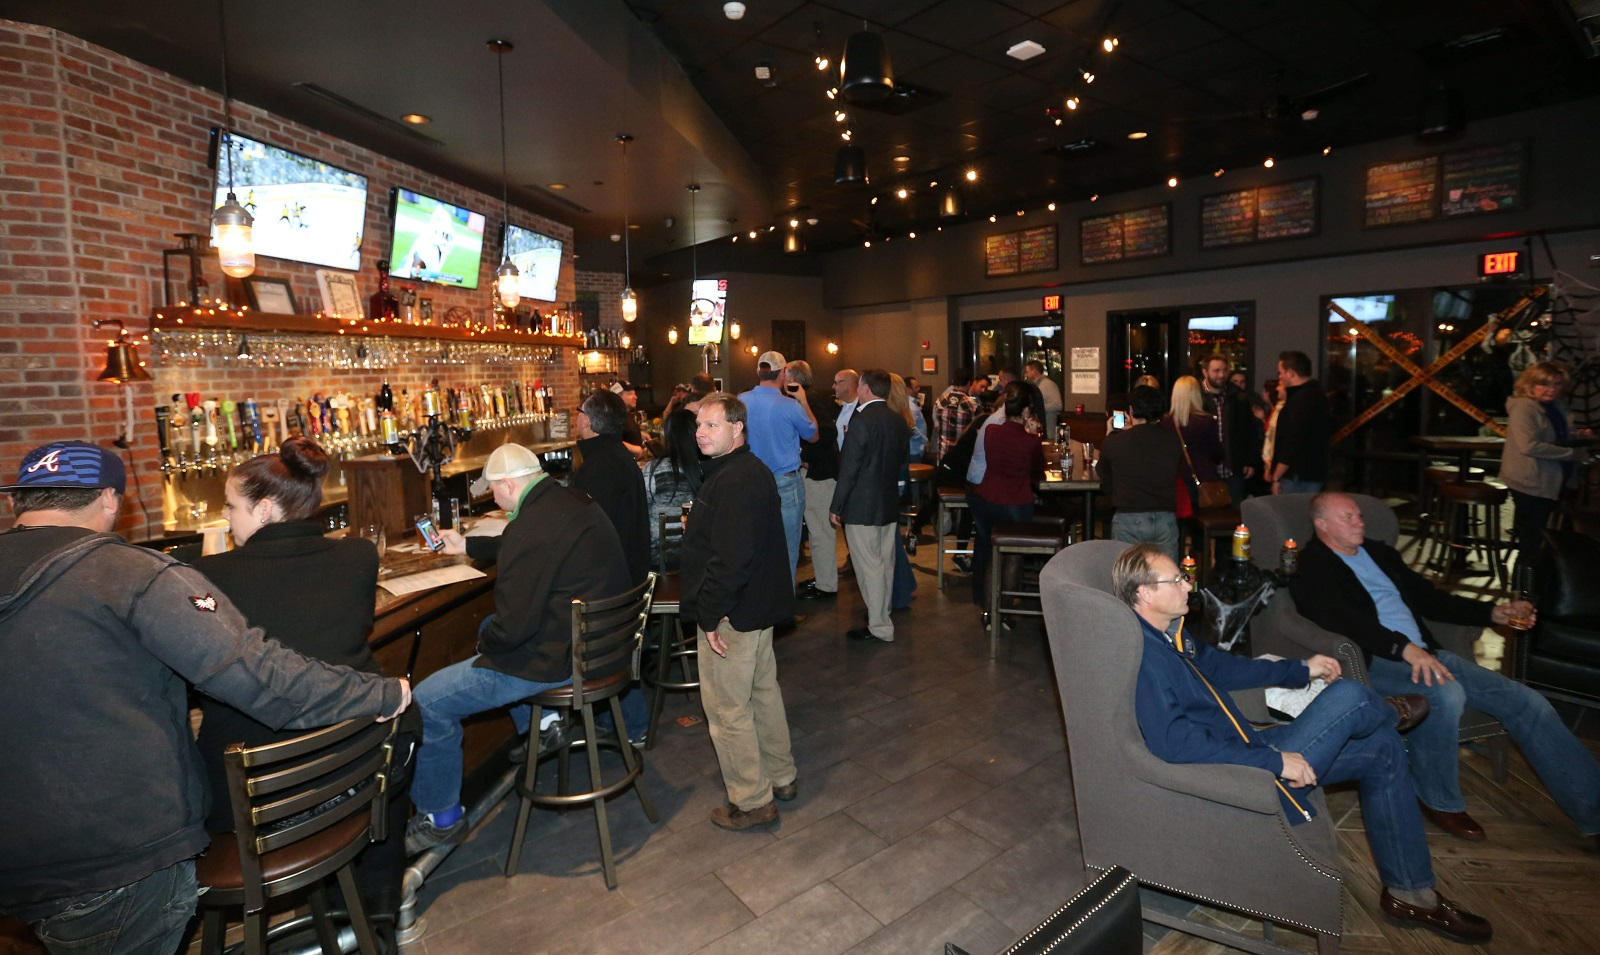 World of Beer in the Walden Galleria is one of the venues for this week's Beer Matters. (Sharon Cantillon/Buffalo News)